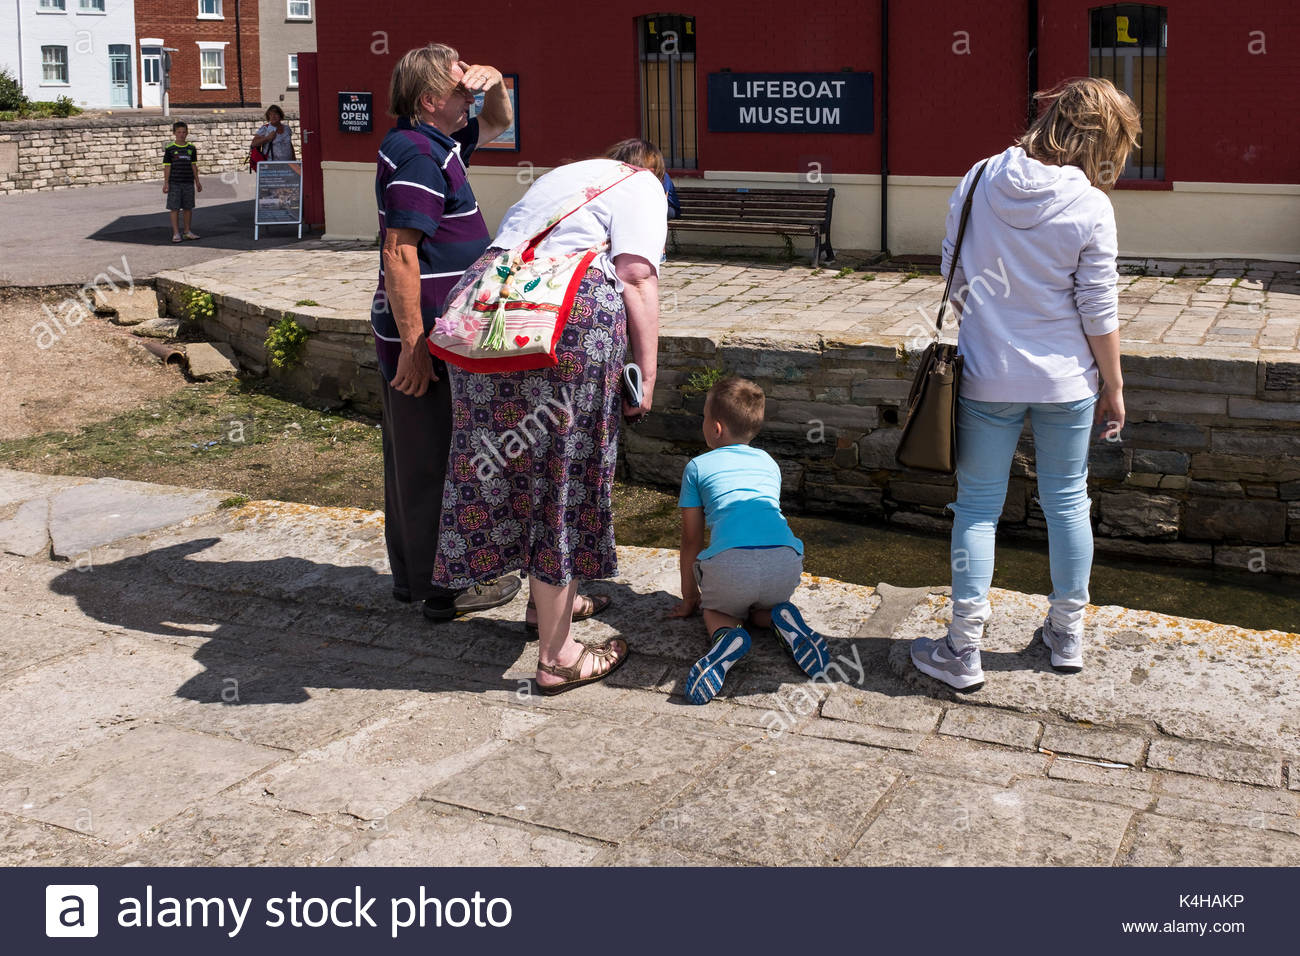 People by Poole Quay and slipway on a warm summer day, Poole, Dorset, England, UK Stock Photo